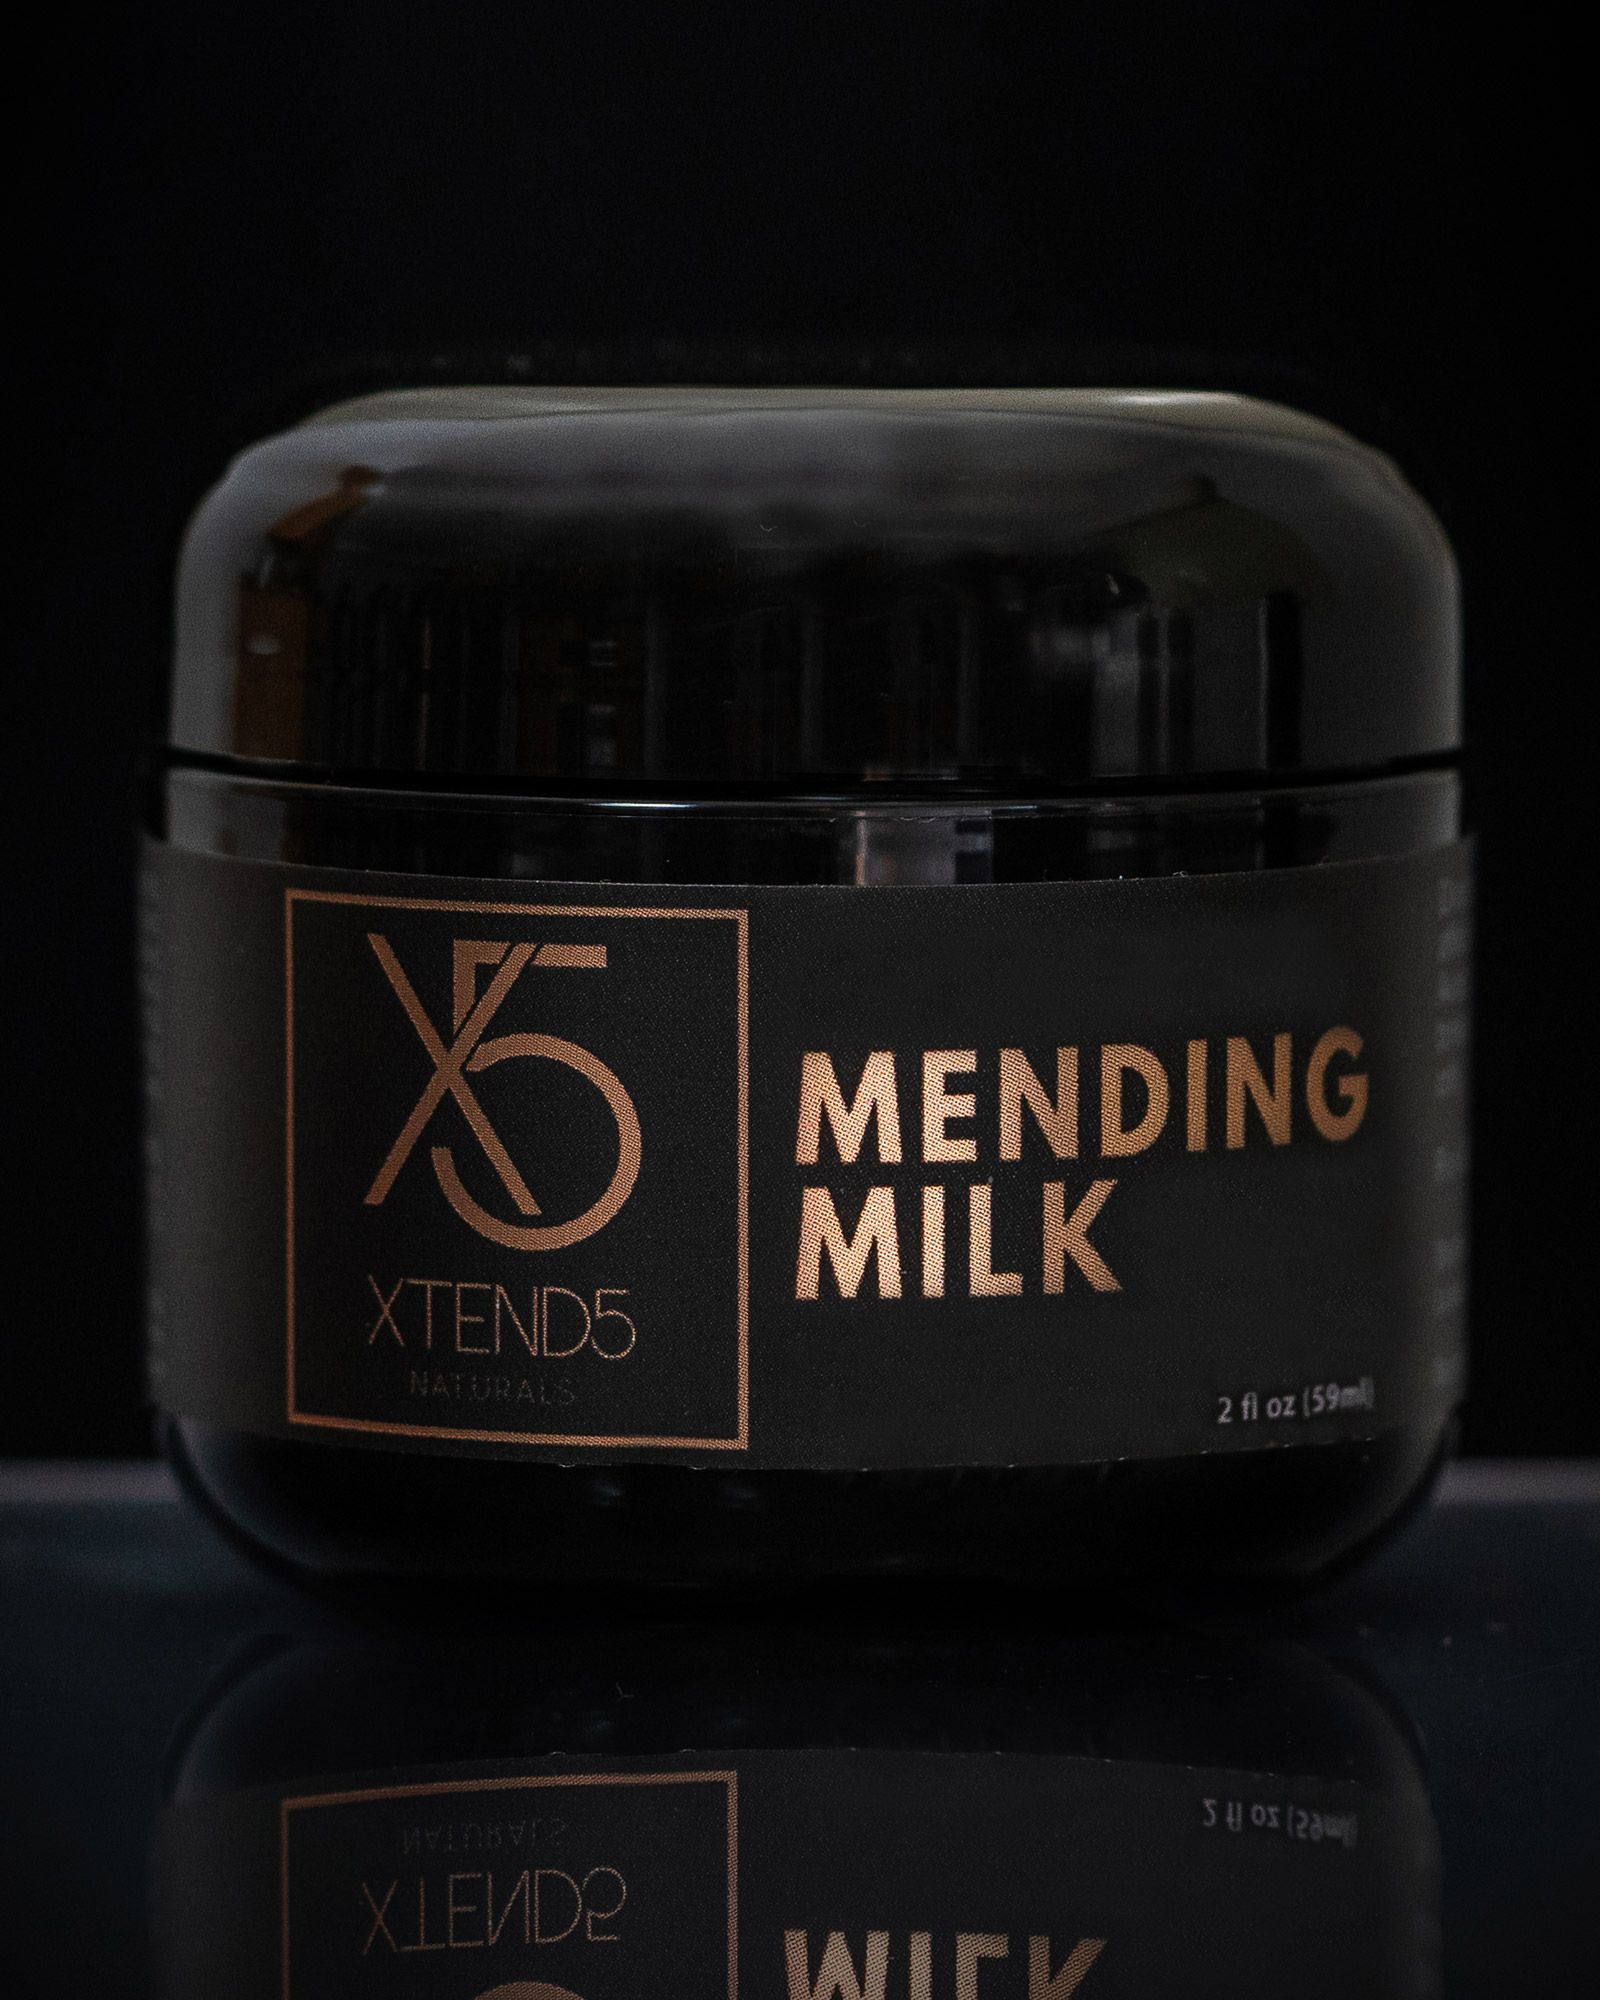 xtend5 mending milk 500mg 1 - 500mg CBD+ Cream